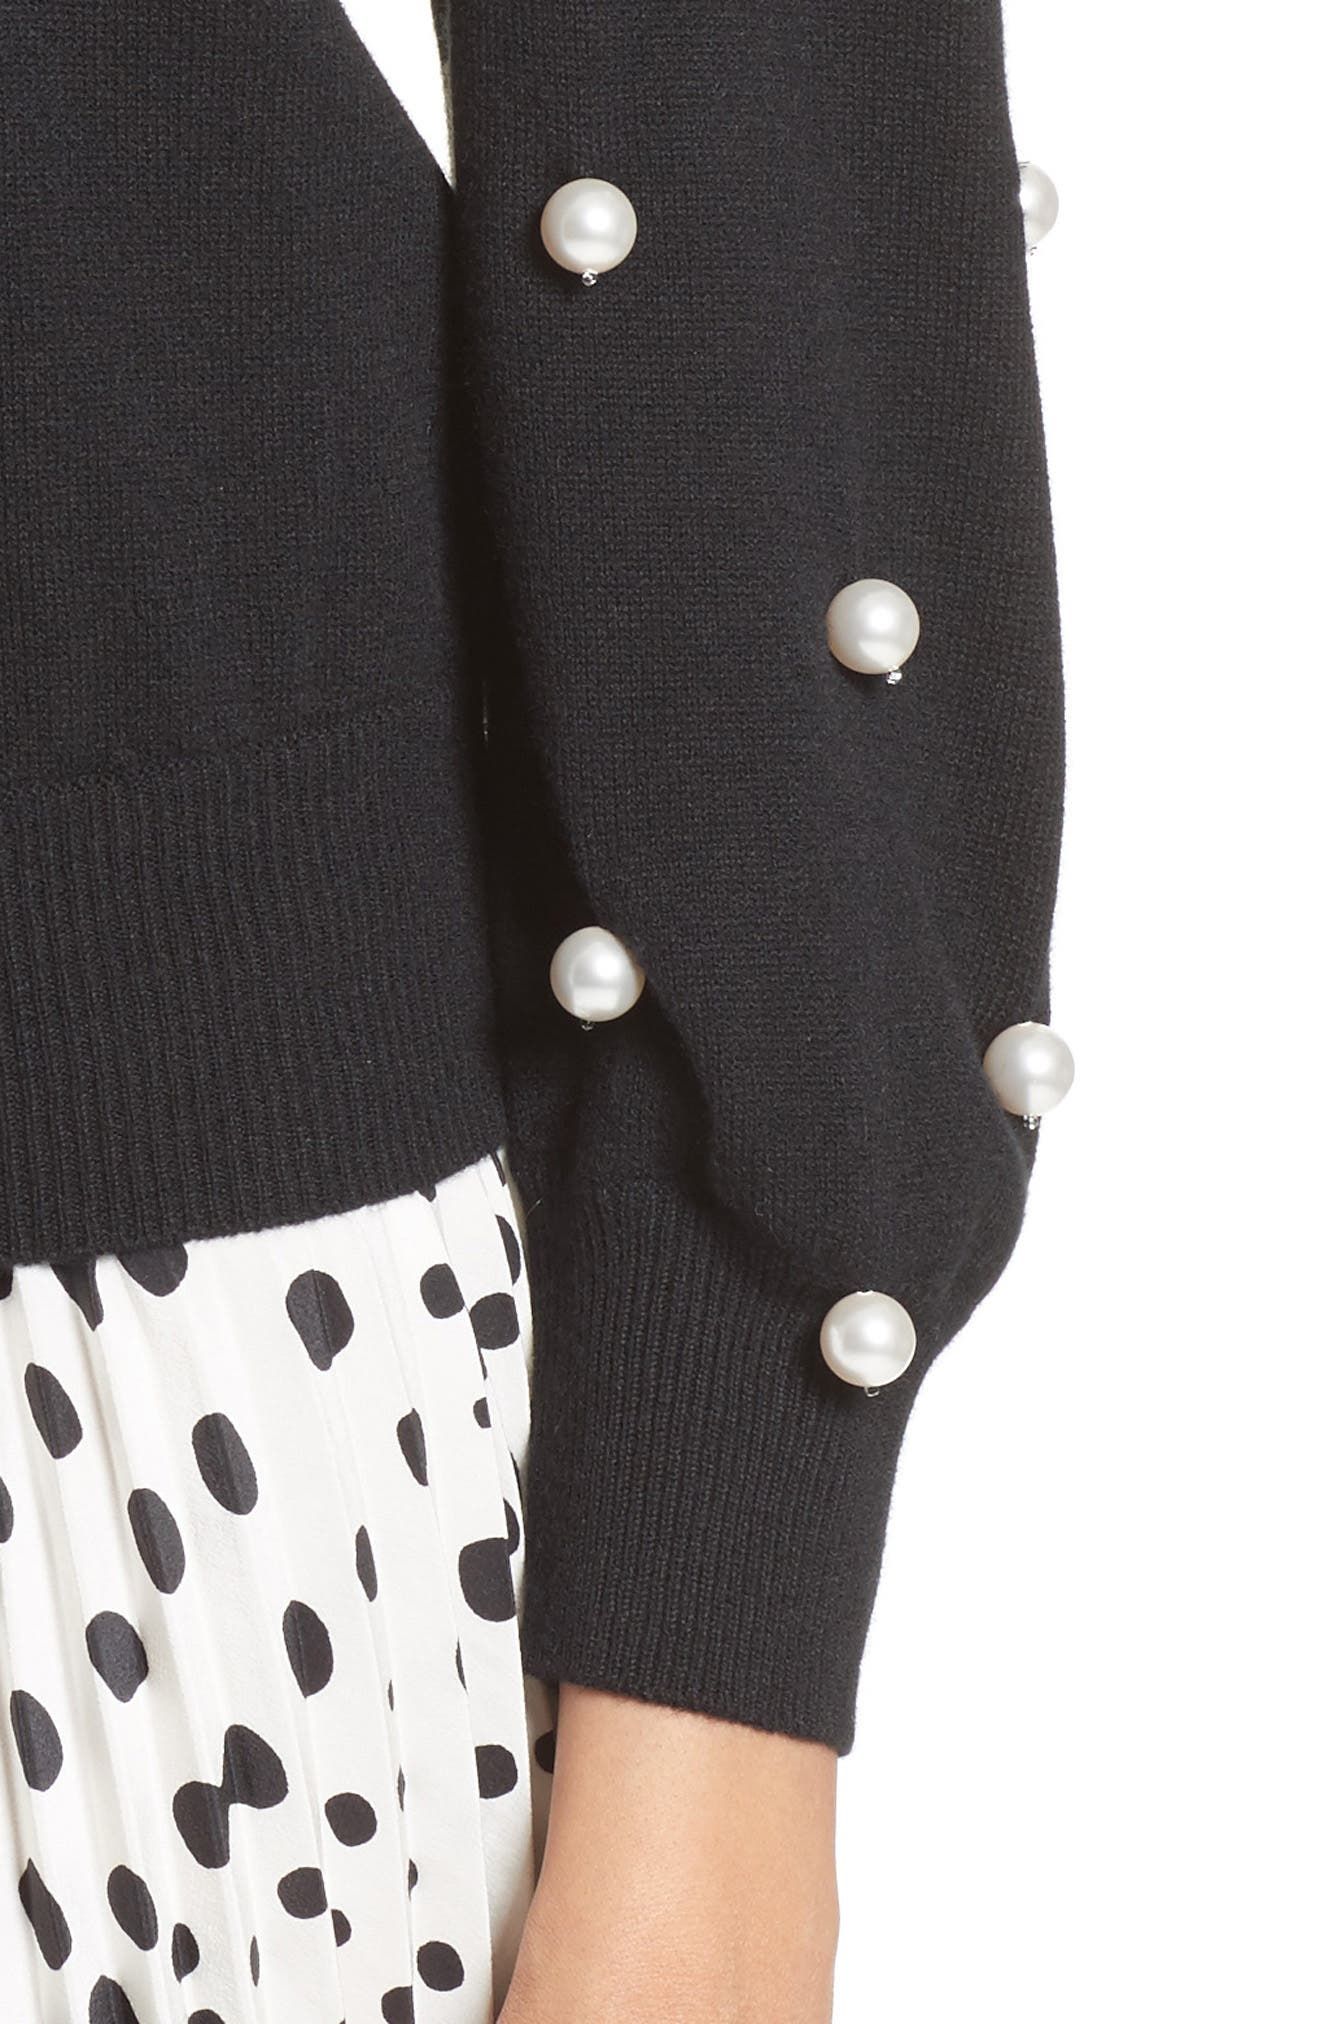 Imitation Pearl Embellished Wool & Cashmere Sweater,                             Alternate thumbnail 4, color,                             001